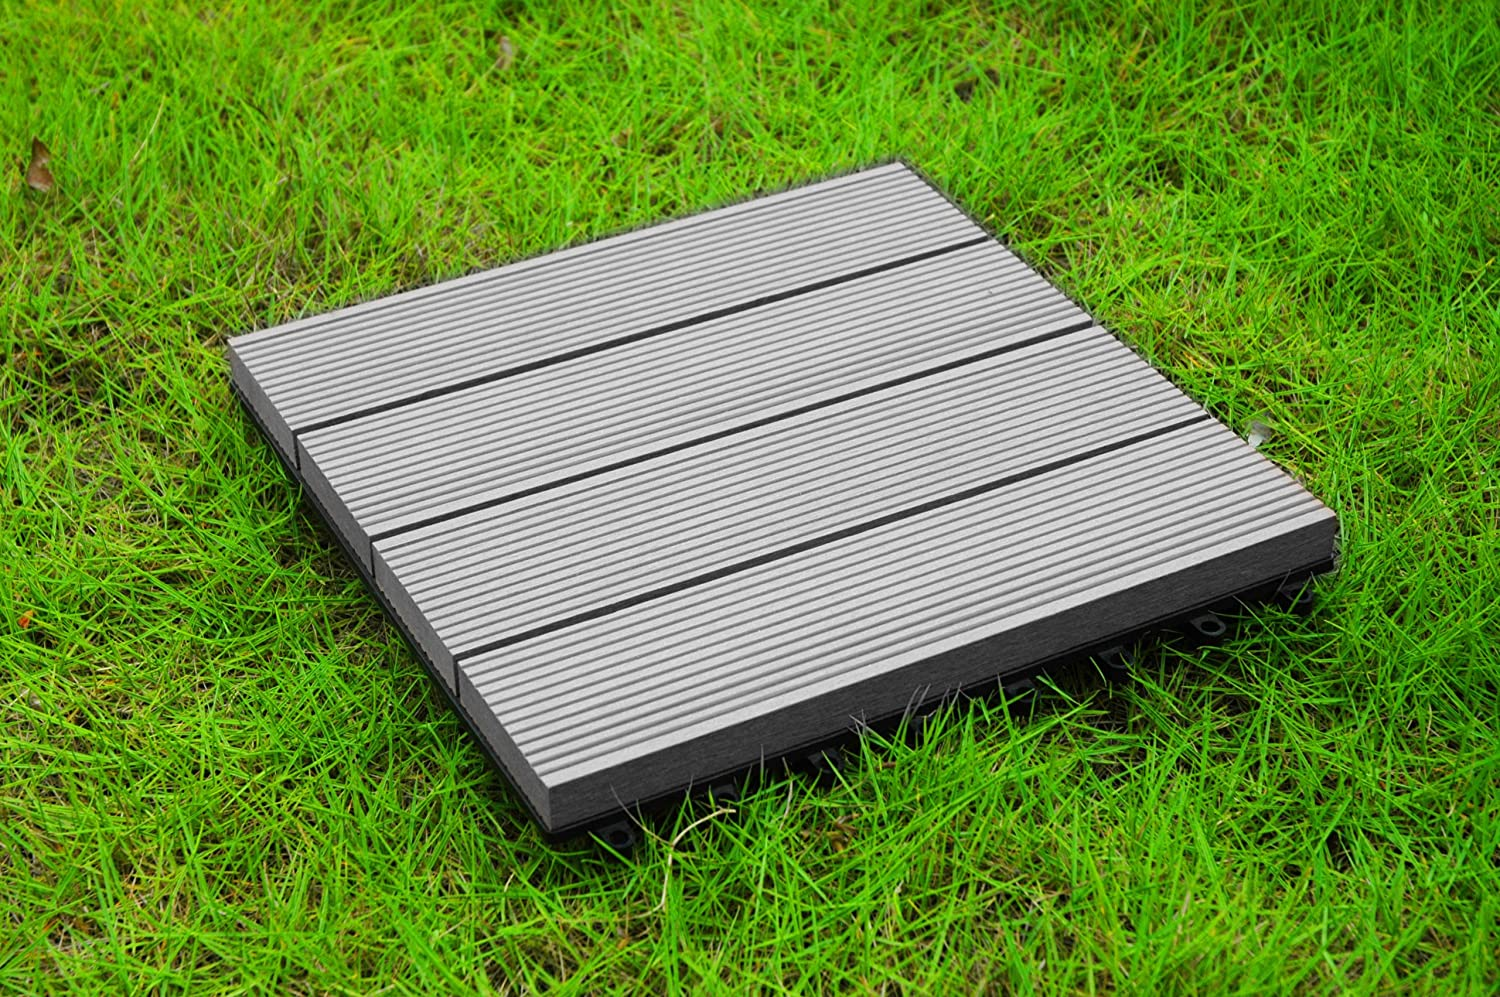 Build4eco century outdoor living diy outdoor patio deck tile build4eco century outdoor living diy outdoor patio deck tile interlocking decking tile composite wood deck flooring gray 4 slate style 10 tiles baanklon Image collections